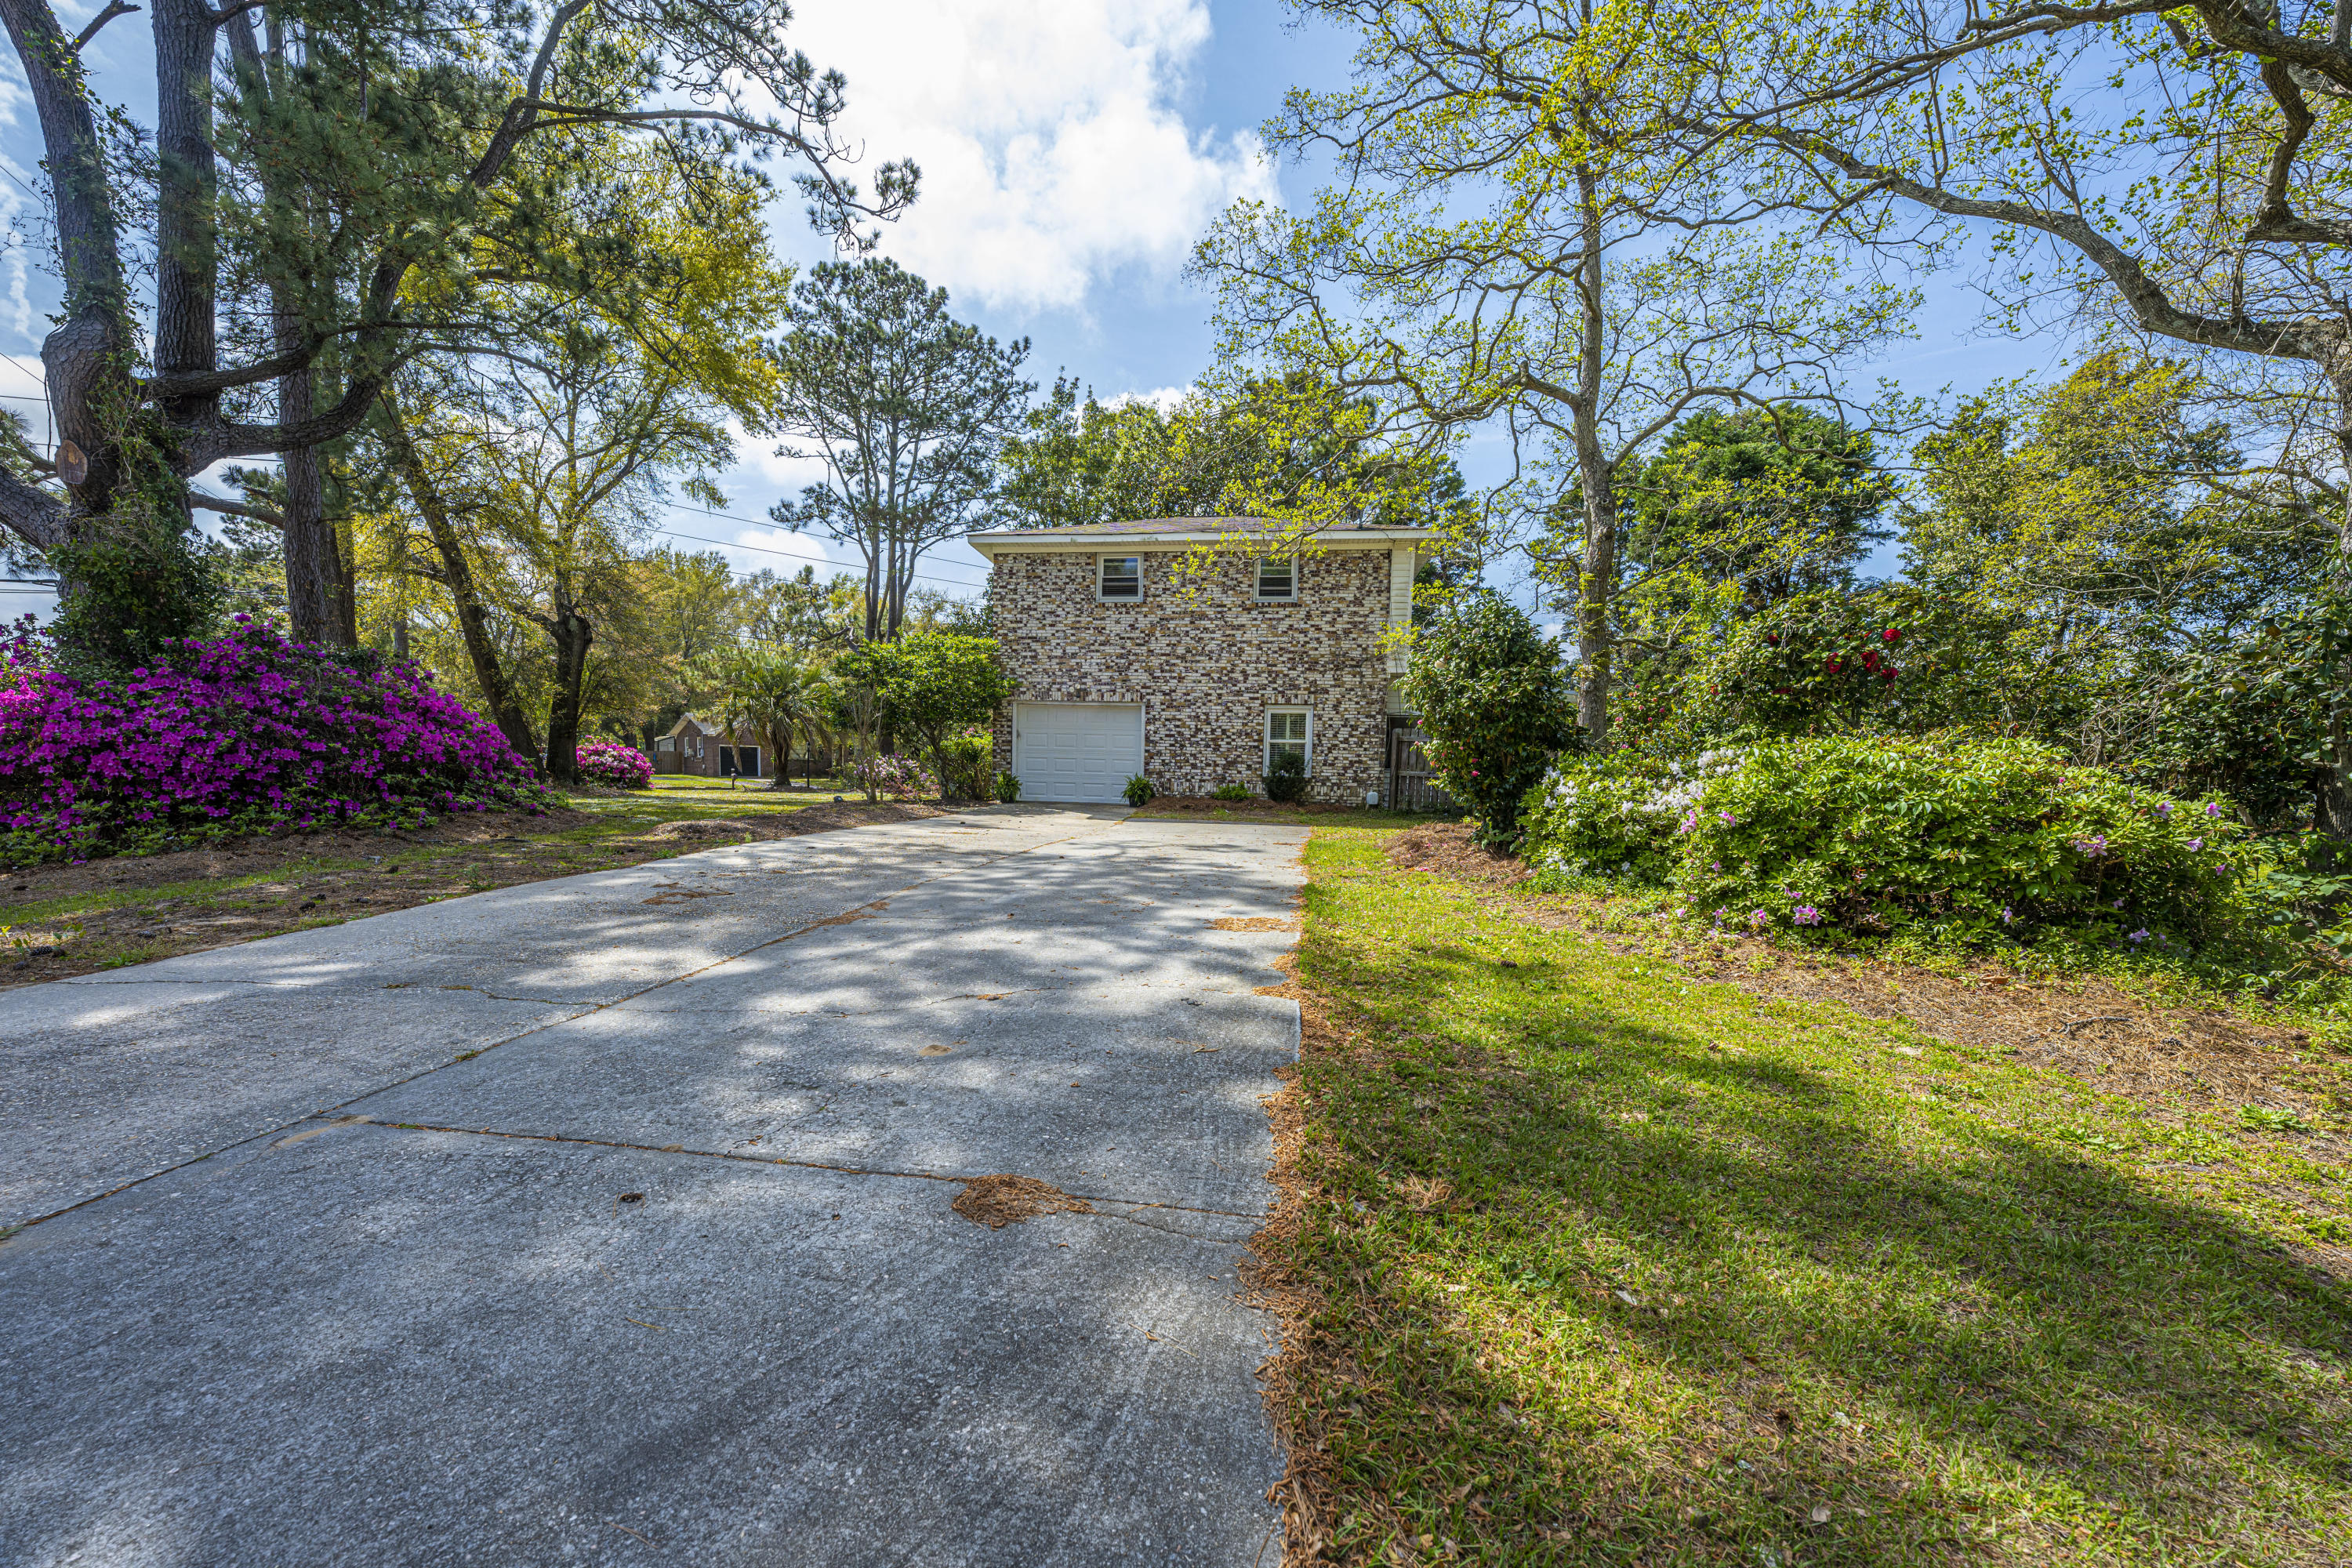 Stiles Point Homes For Sale - 775 Sparrow, Charleston, SC - 31